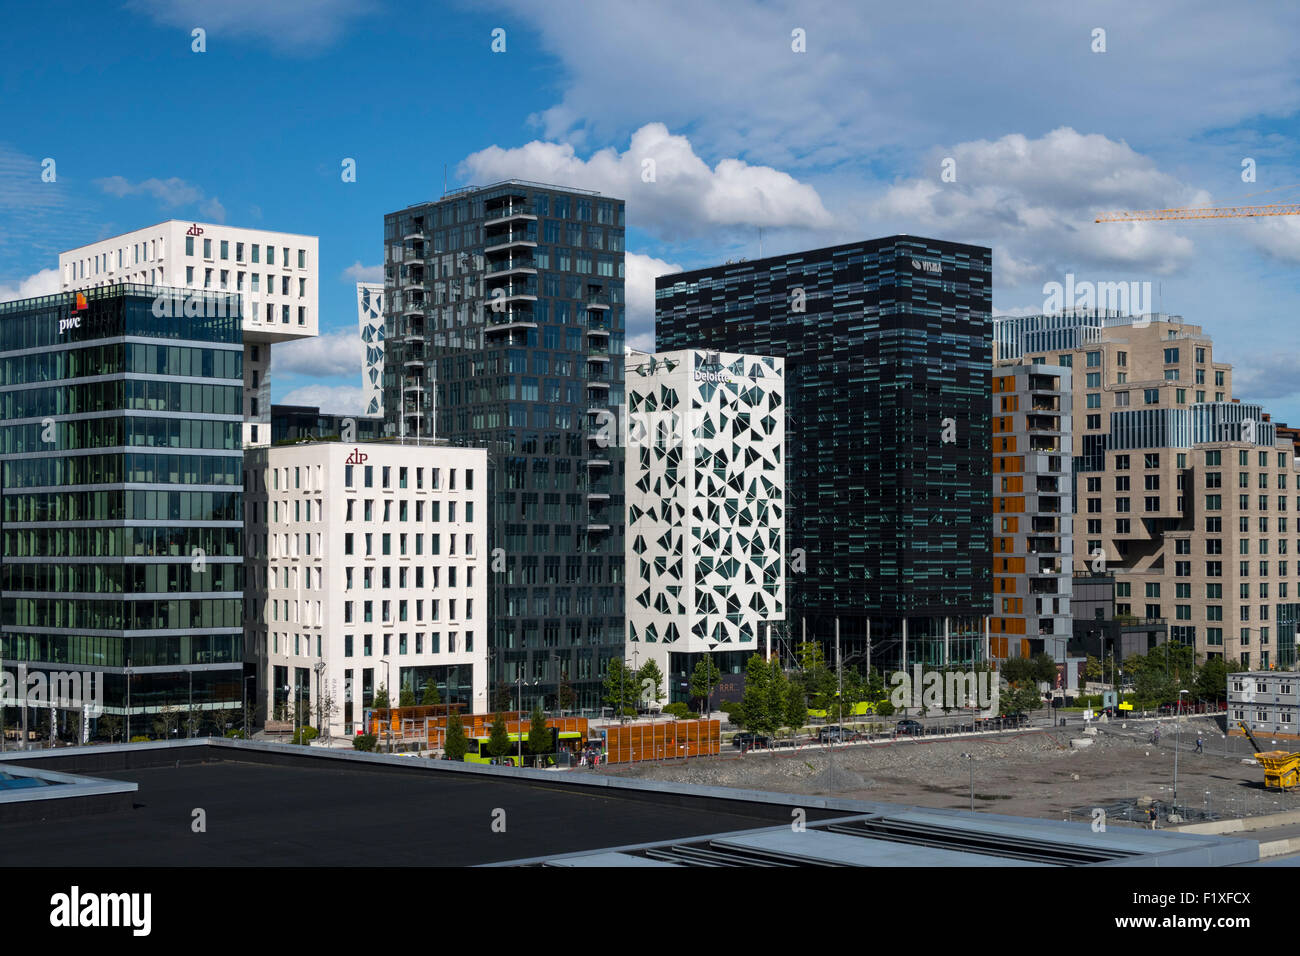 moderne architektur geb ude in oslo norwegen stockfoto bild 87249370 alamy. Black Bedroom Furniture Sets. Home Design Ideas